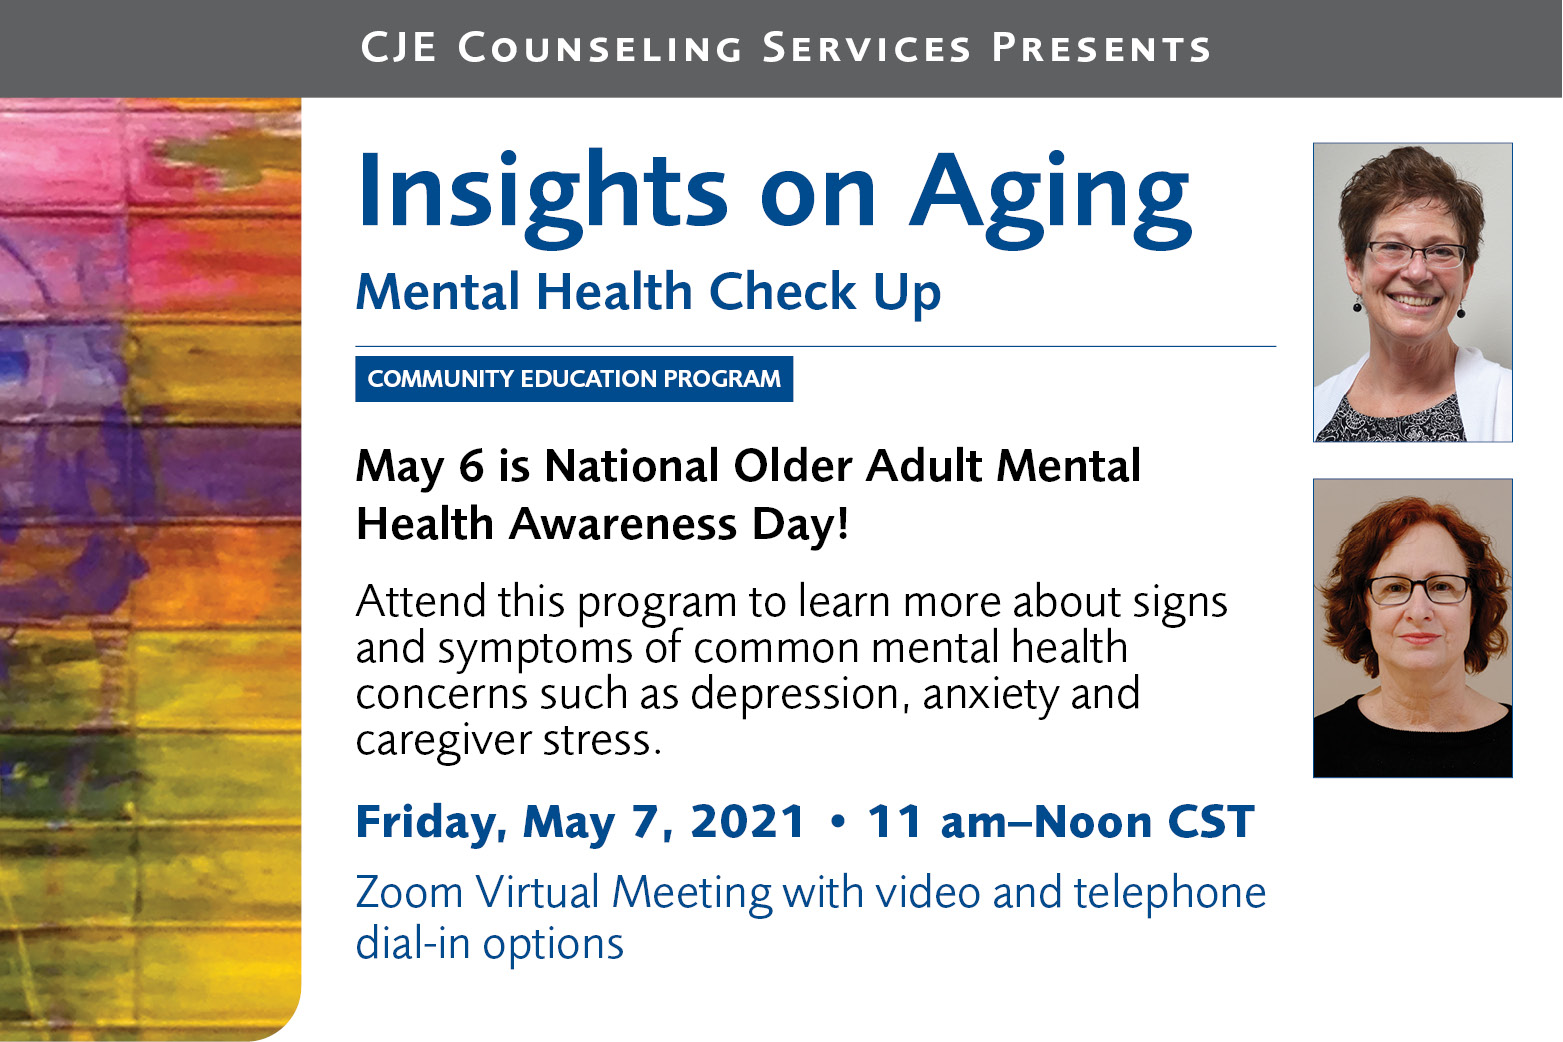 Insights on Aging Mental Health Check Up